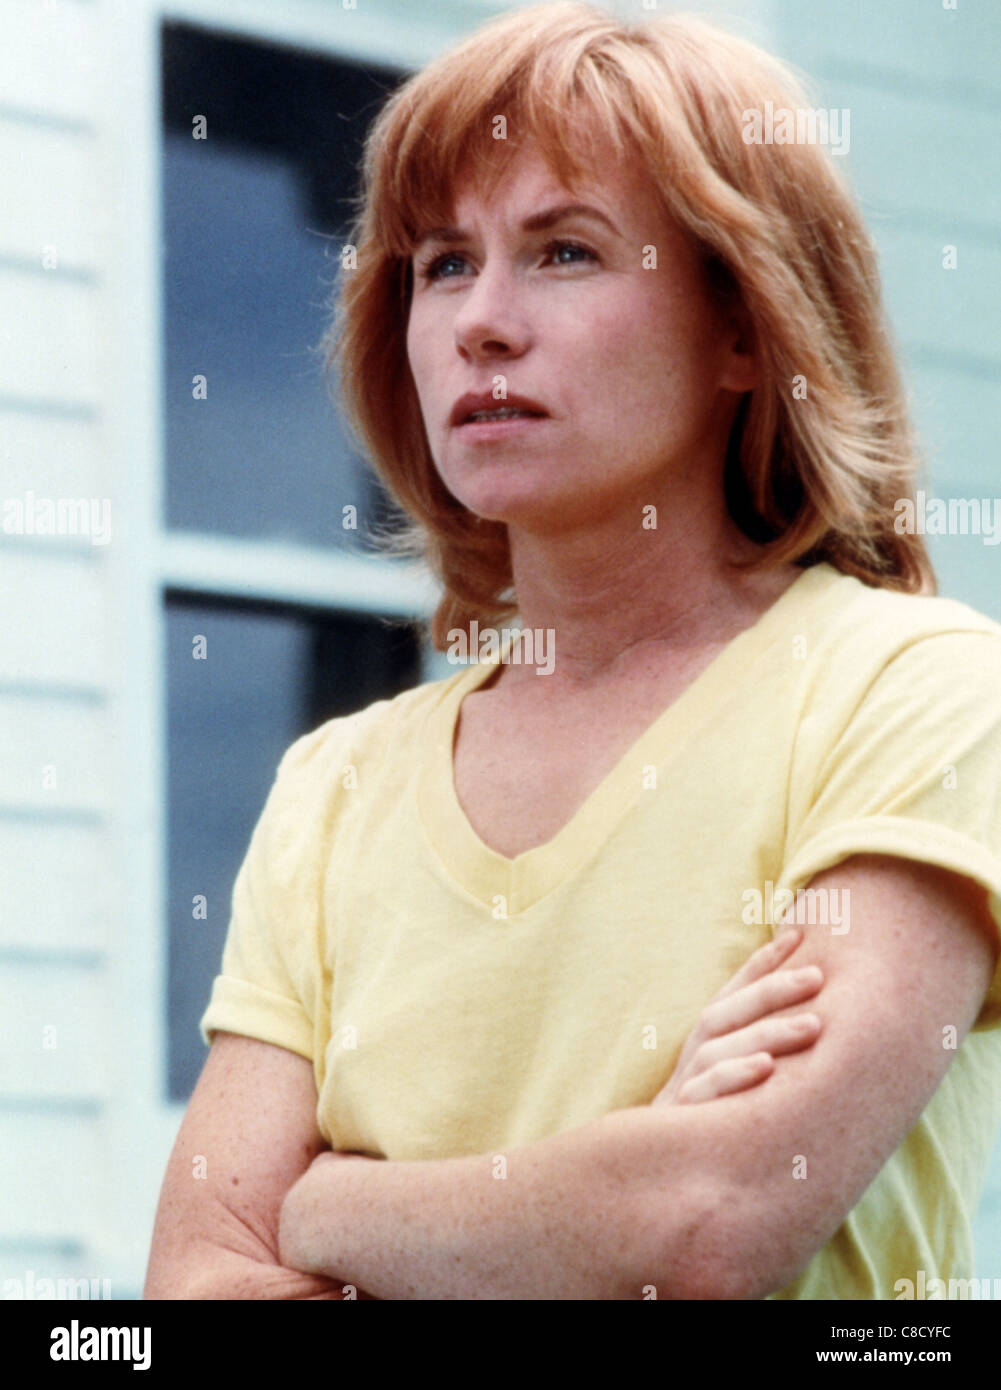 Amy Madigan nude (84 photo), Topless, Fappening, Boobs, swimsuit 2006